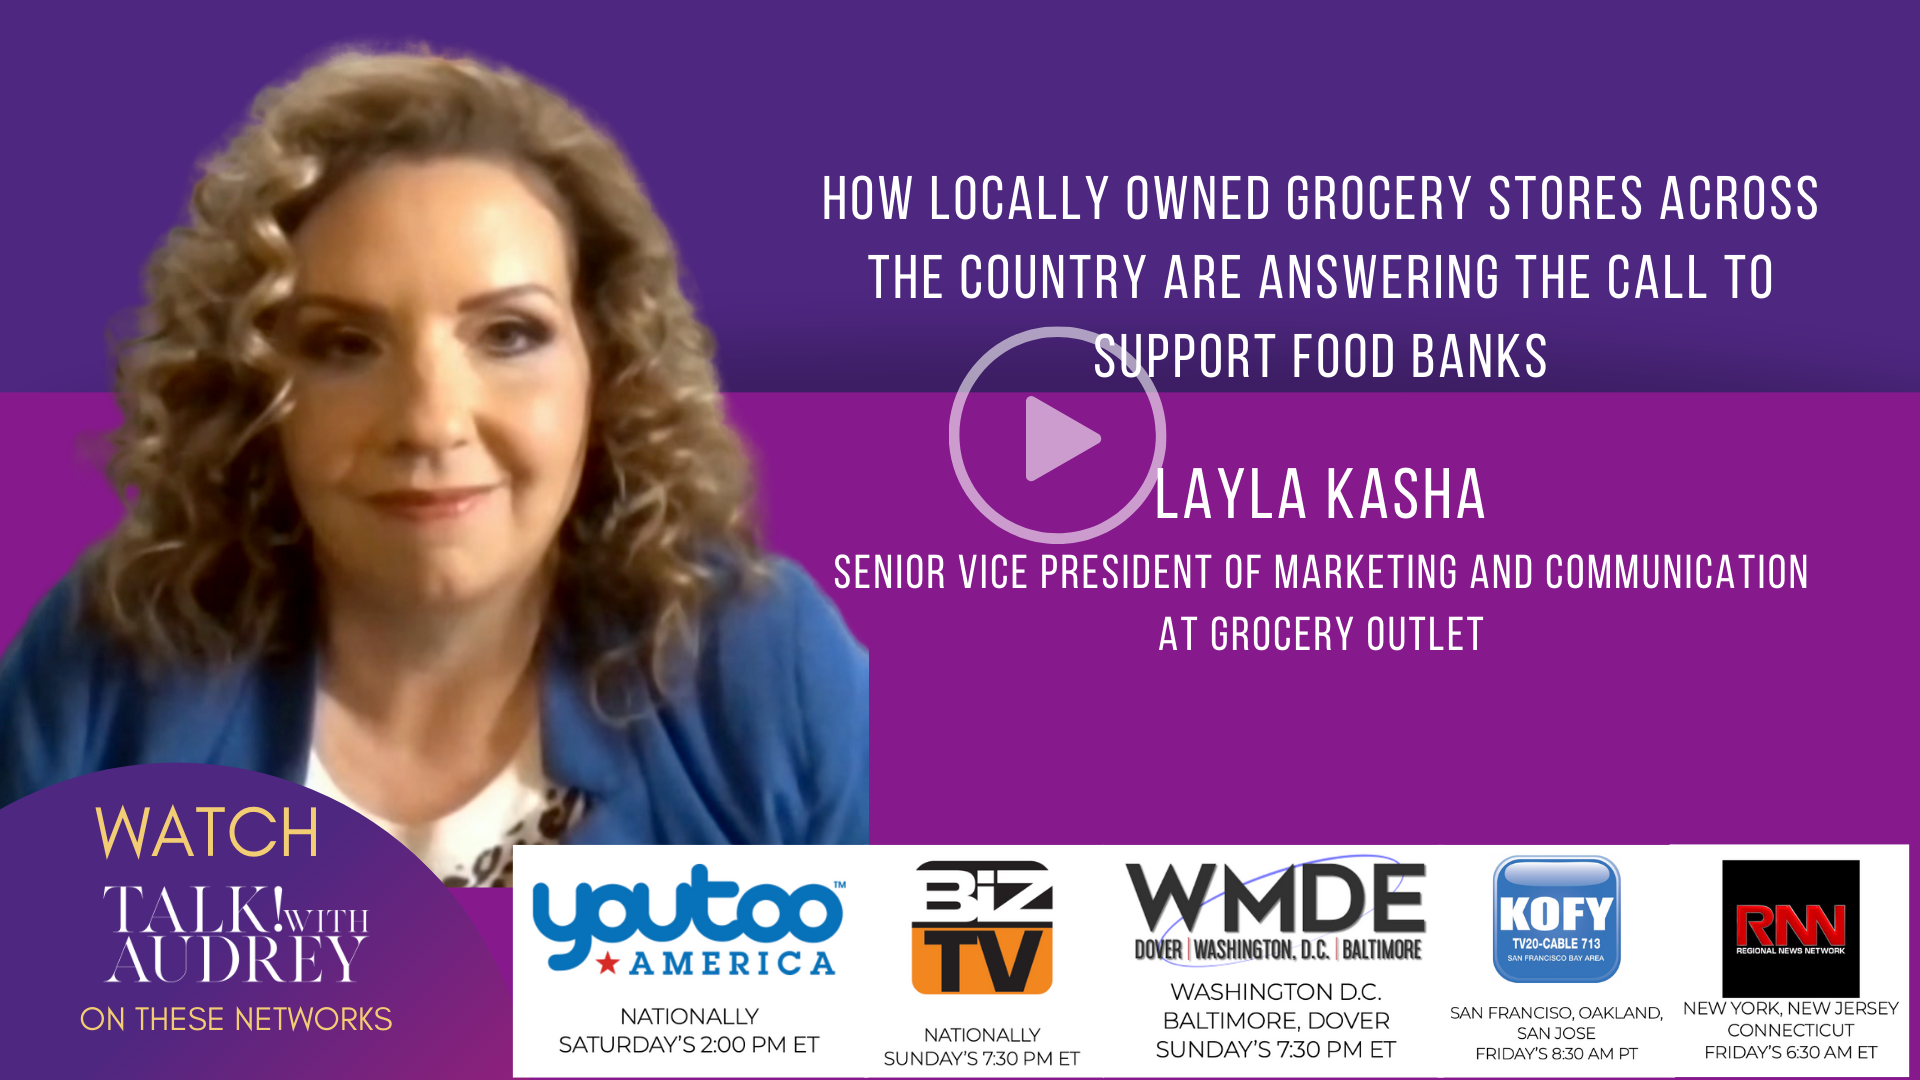 How Locally Owned Grocery Stores Across The Country Are Answering The Call To Support Food Banks – TALK! with AUDREY TV